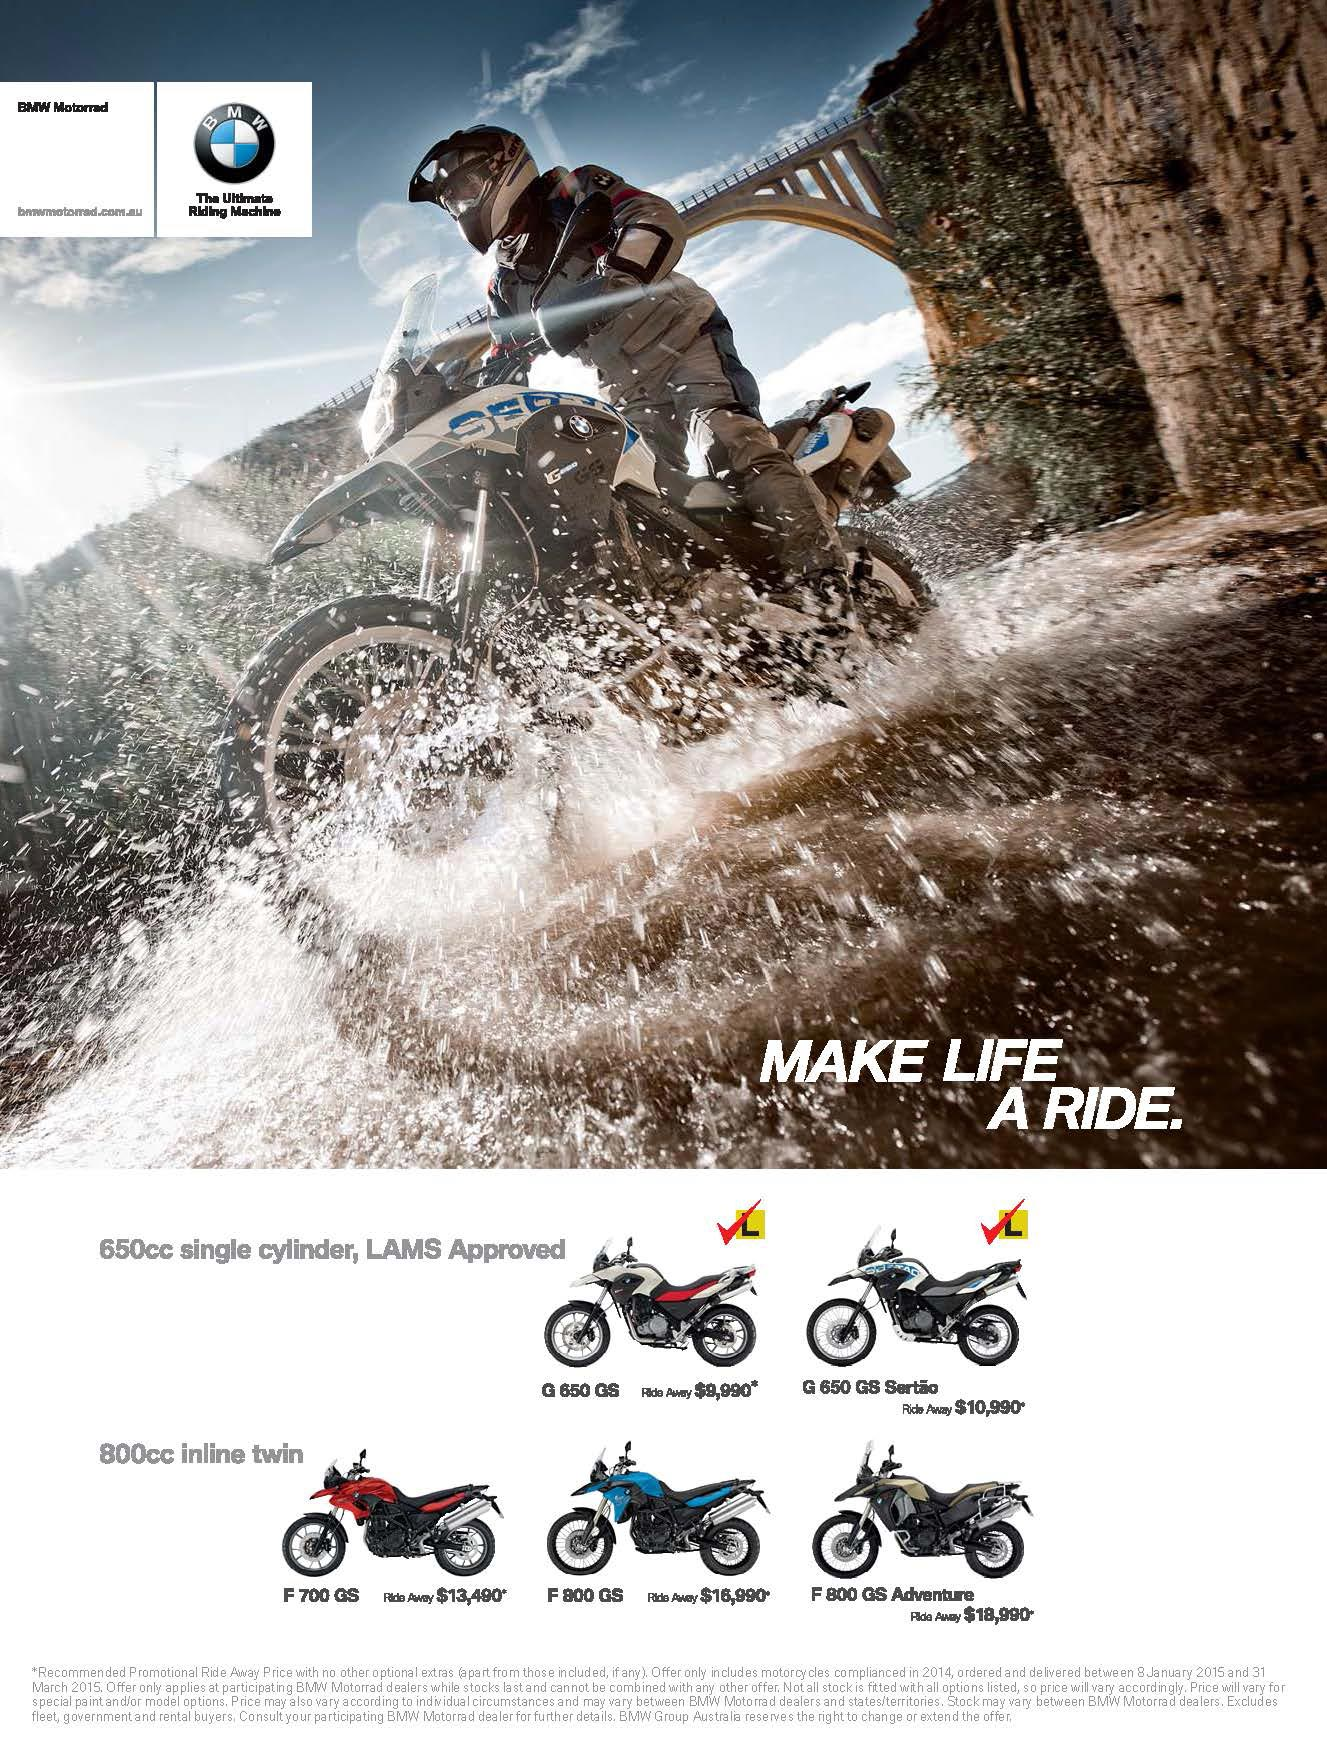 BMW doing deals on 2014 plated GS models